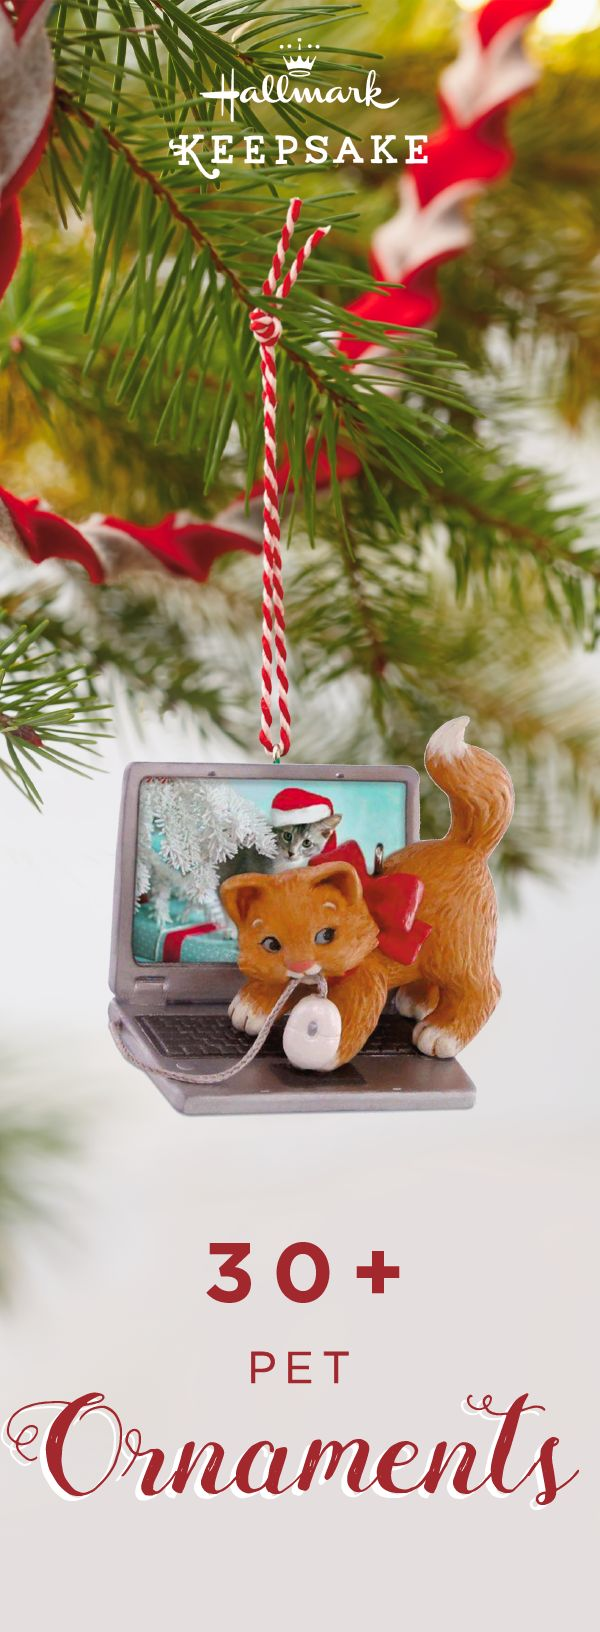 Find Christmas decorations for everyone with Hallmark